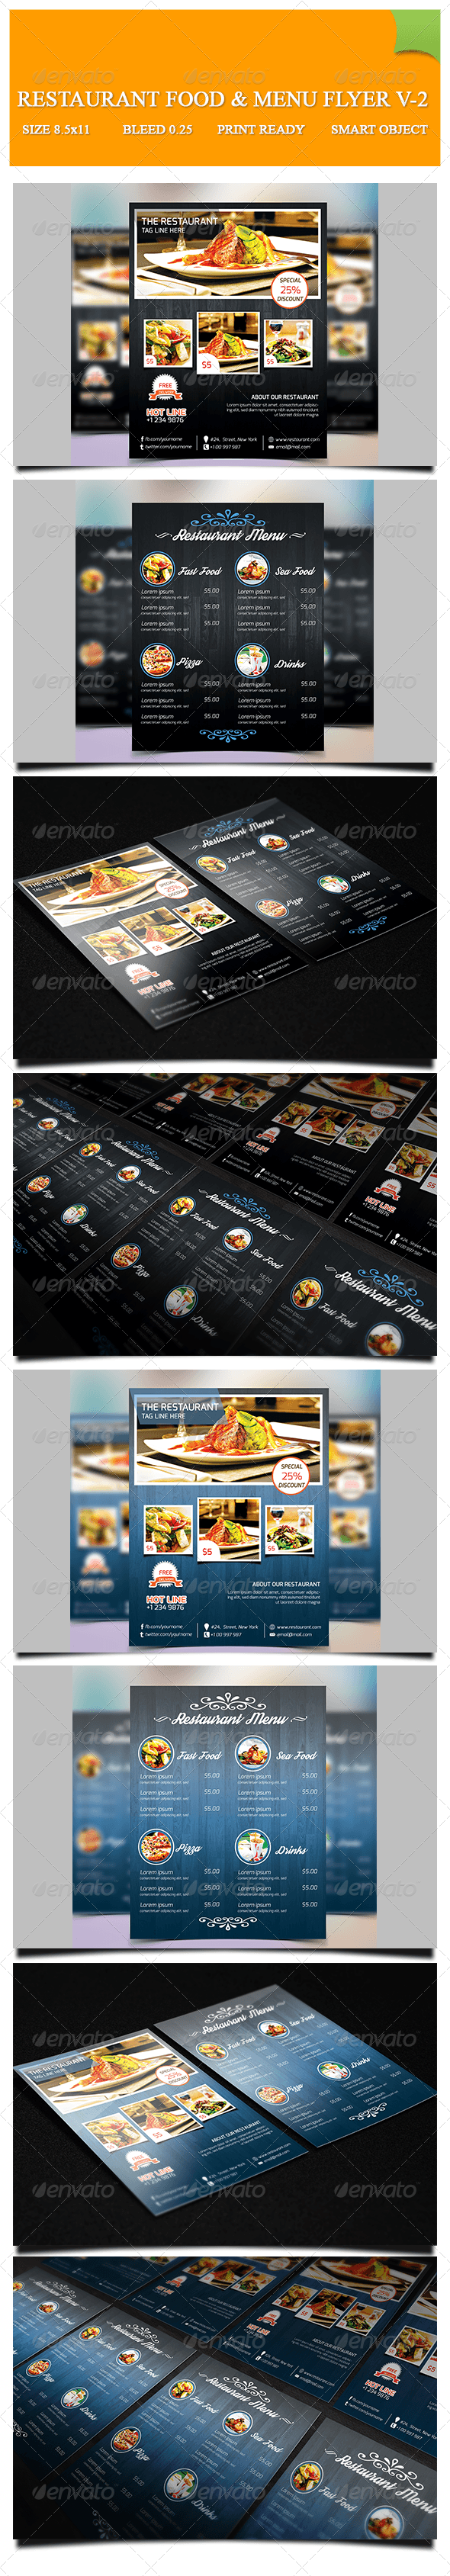 GraphicRiver Restaurant Food & Menu Flyer V-2 8183960